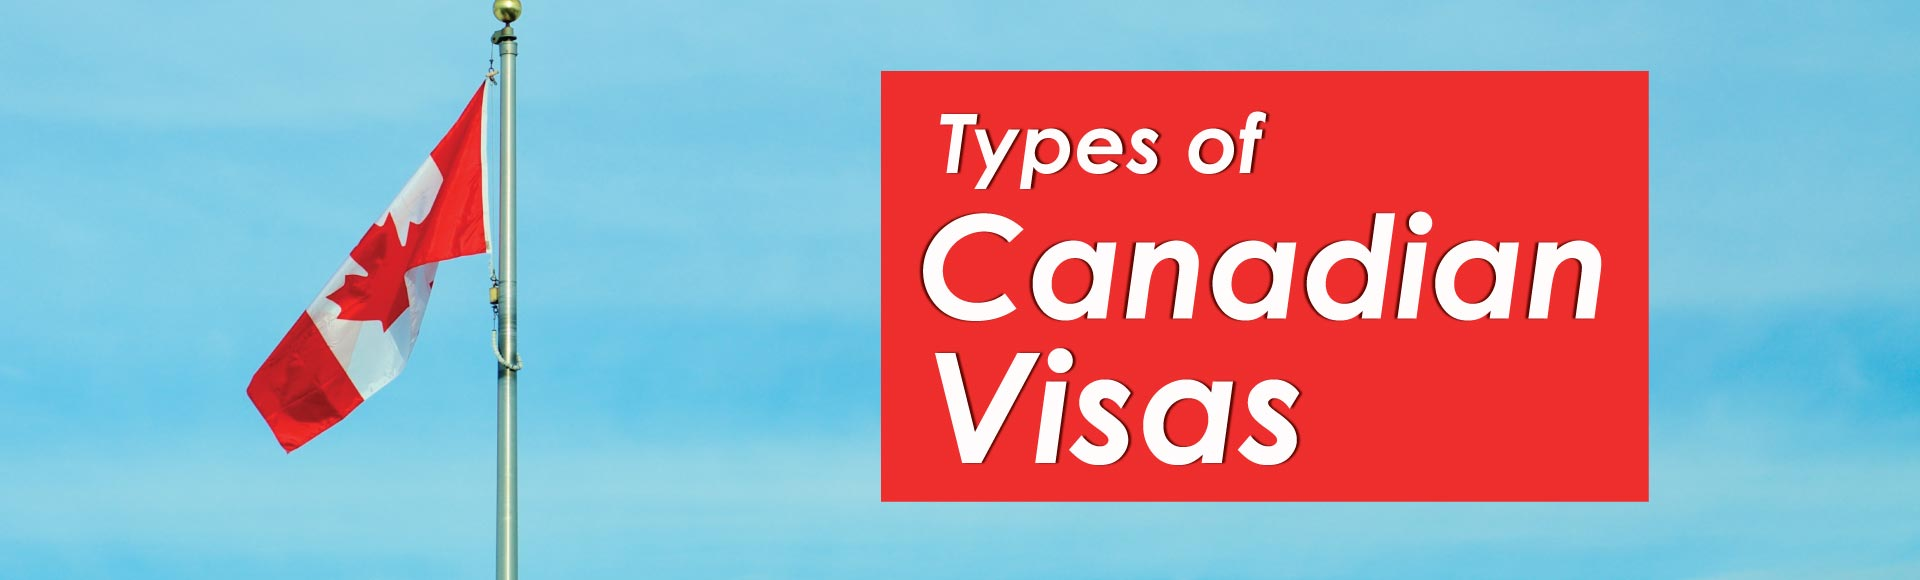 Types of Canadian Visas